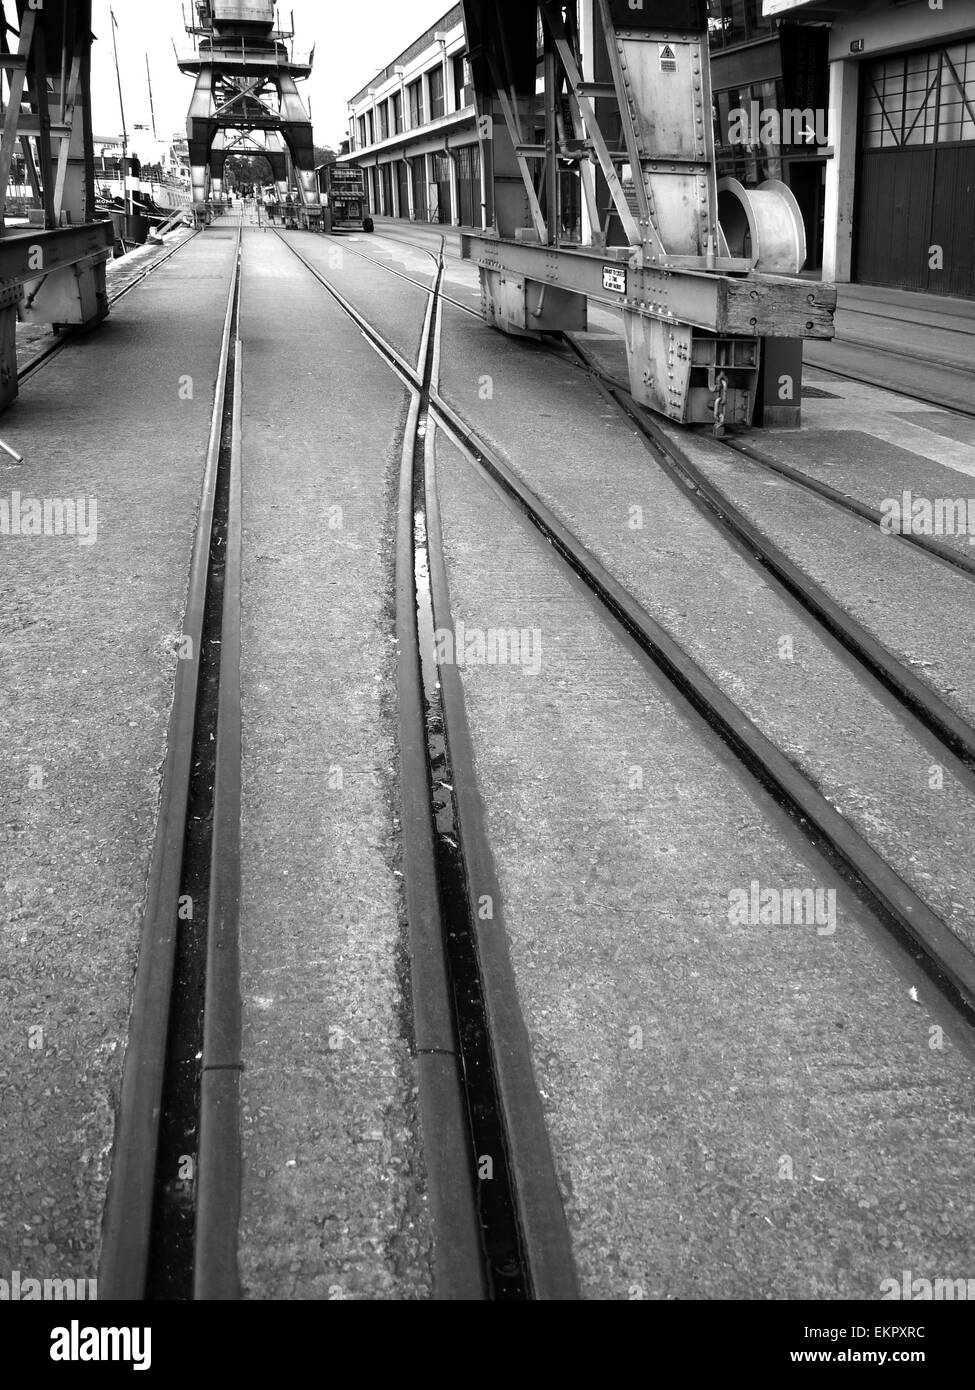 Dockside at Bristol. Disused and maintained as museum. - Stock Image